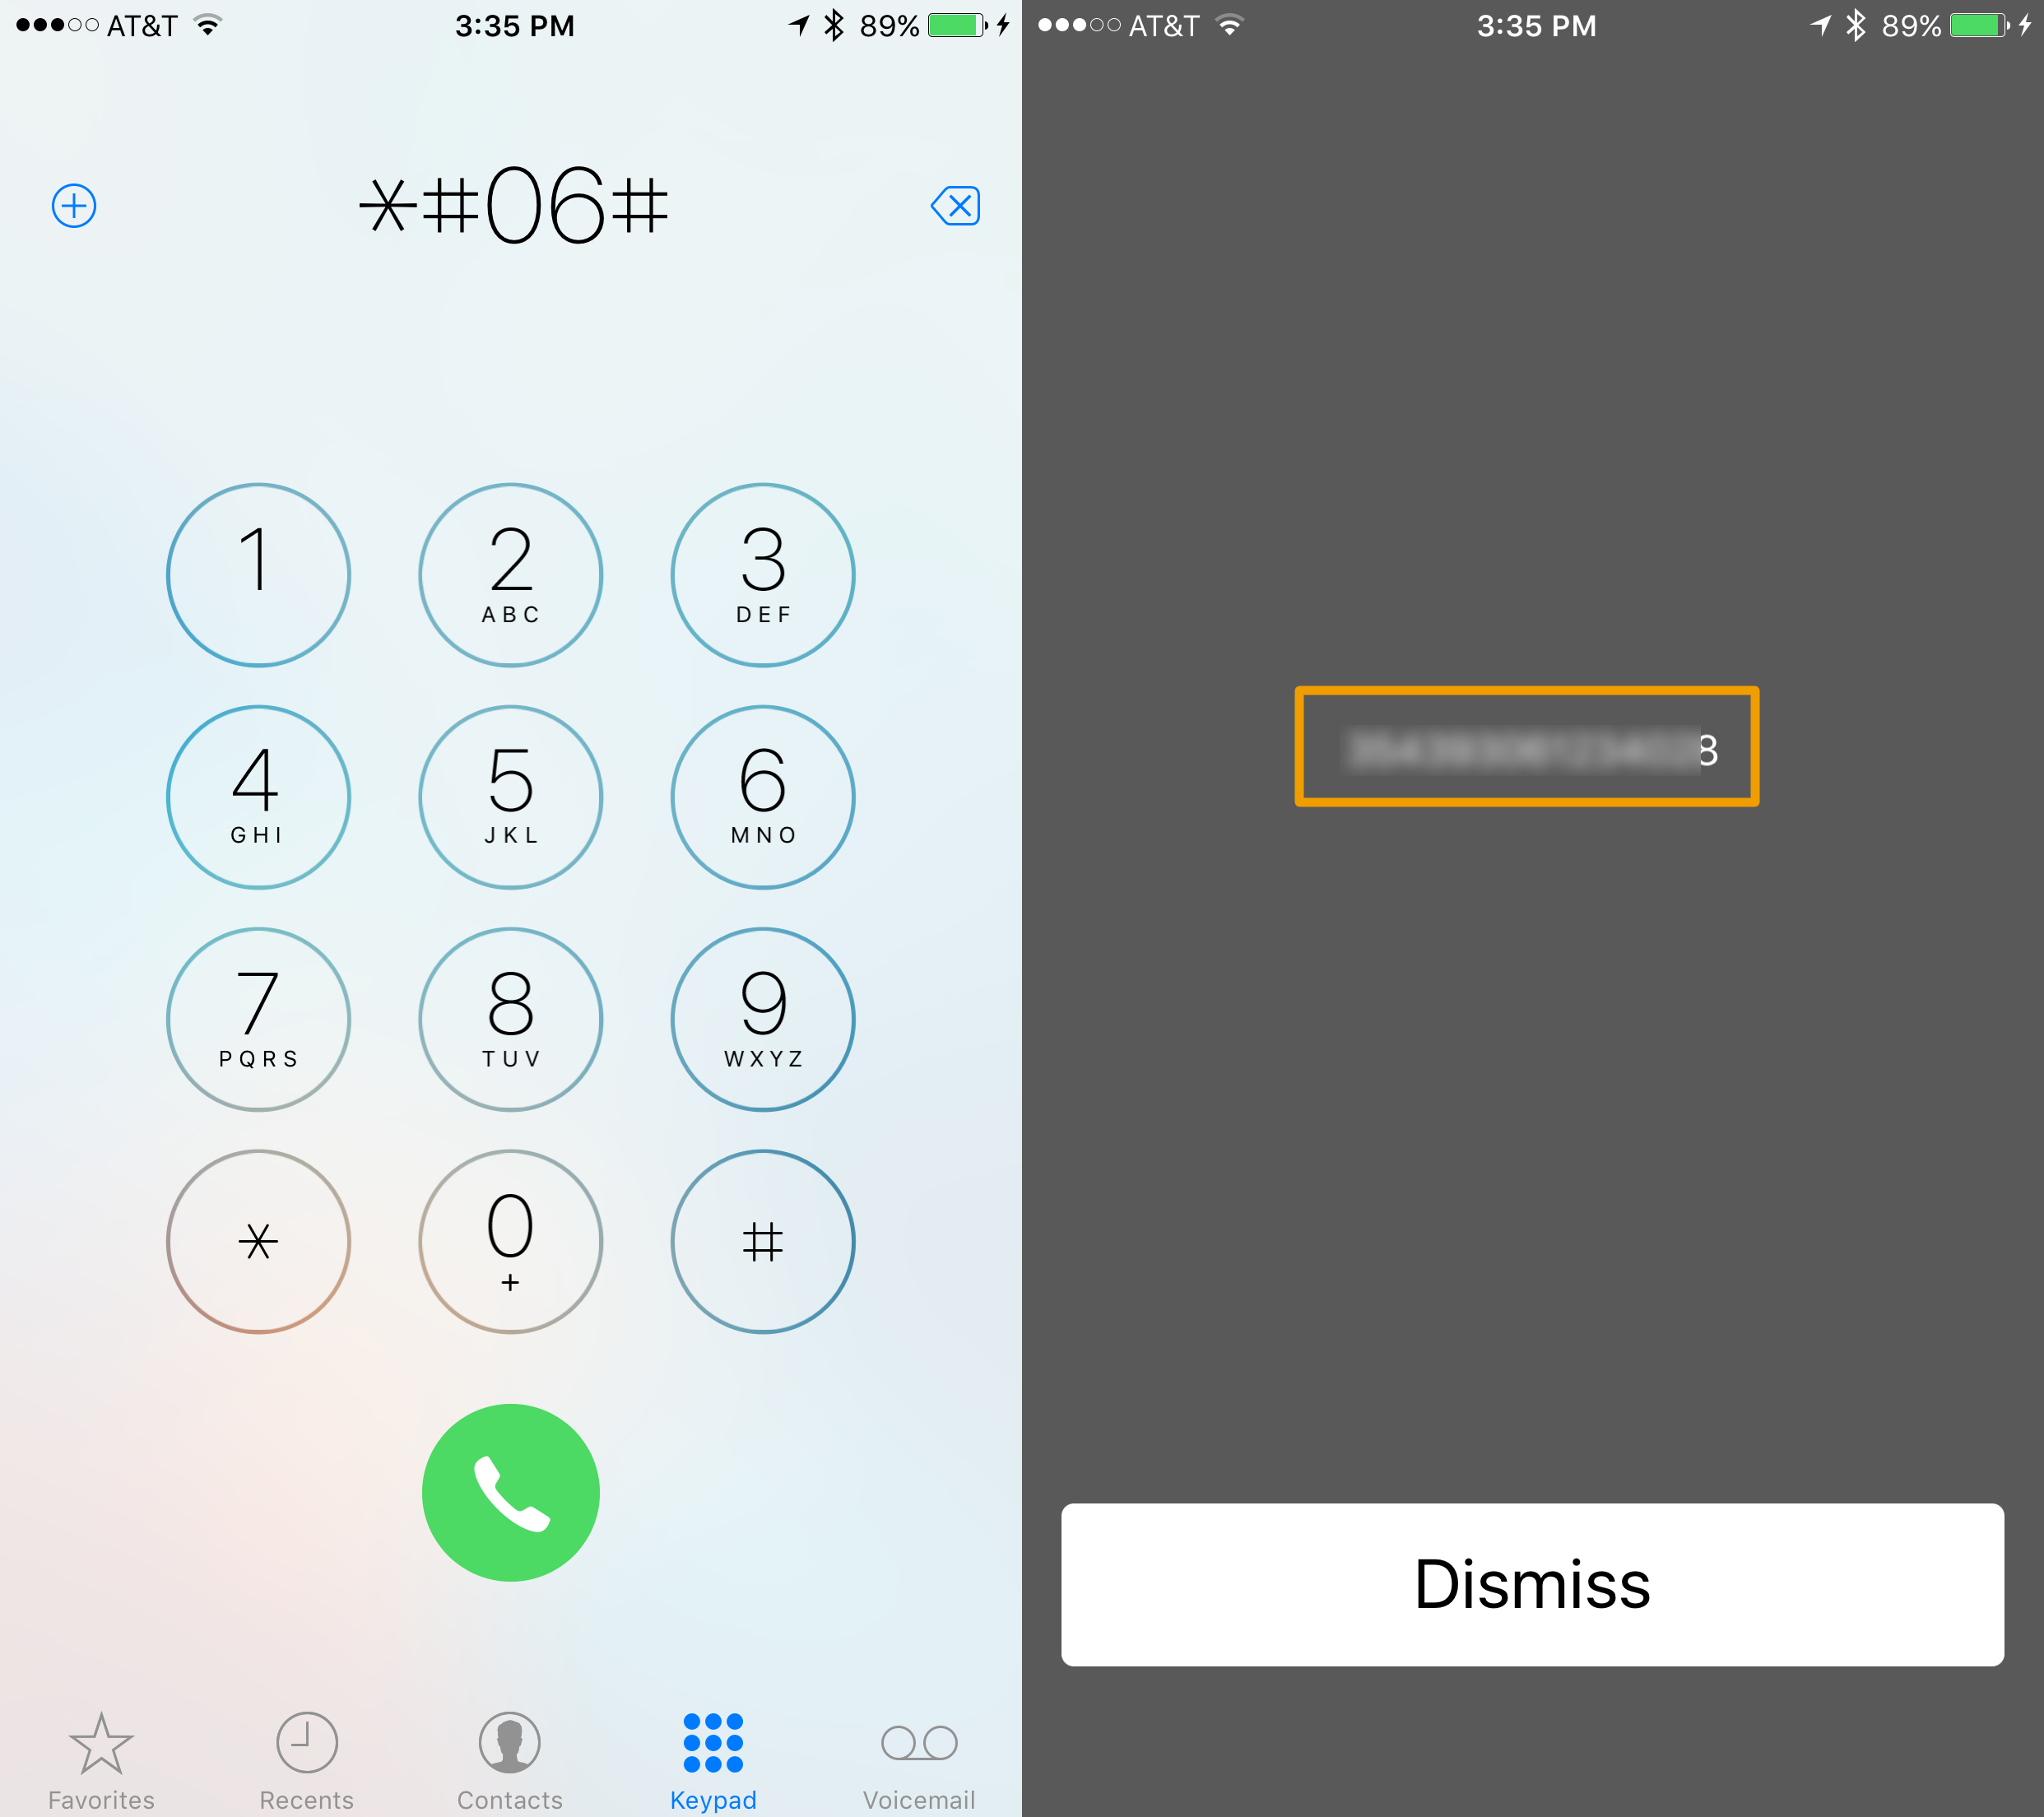 Find iPhone IMEI number using the Phone app